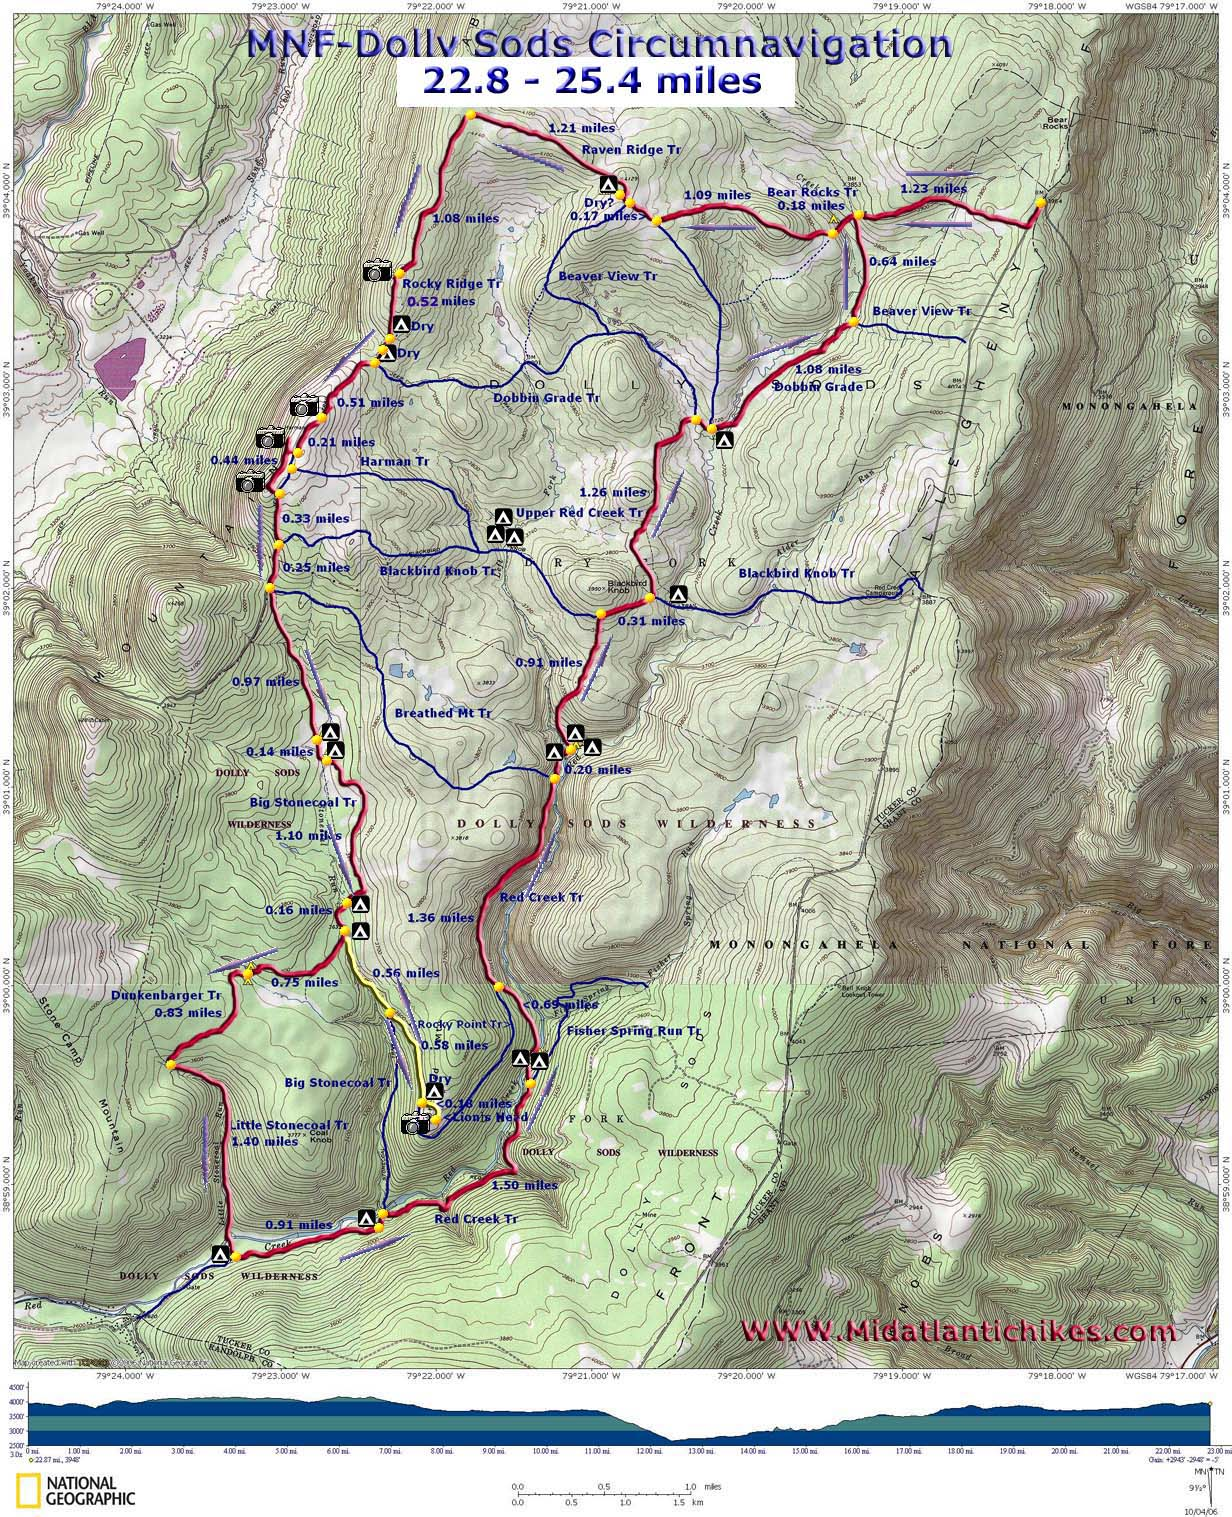 Dolly Sods Cirnavigation on otter creek wilderness area map, blackwater falls state park map, boston metro map, spruce knob, otter creek wilderness, laurel fork north wilderness, canaan valley national wildlife refuge, roaring plains west wilderness, smoke hole caverns, north fork mountain, bear rocks preserve, fairfax stone, oberg mountain trail map, smoke hole canyon, canaan valley state park map, elk river, wv state parks map, monongahela national forest, cranberry glades botanical area, cranberry glades map, elizabeth furnace map, nature map, taihu lake map, greater puget sound map, george washington national forest map, kumbrabow state forest, mammoth cave map, cathedral state park, superstition wilderness map, spruce knob map, new river gorge map, greater brisbane map, gauley river, seneca rocks, canaan valley resort state park, cranberry wilderness, canaan valley, shenandoah national park map, the plains va map, wulingyuan map,